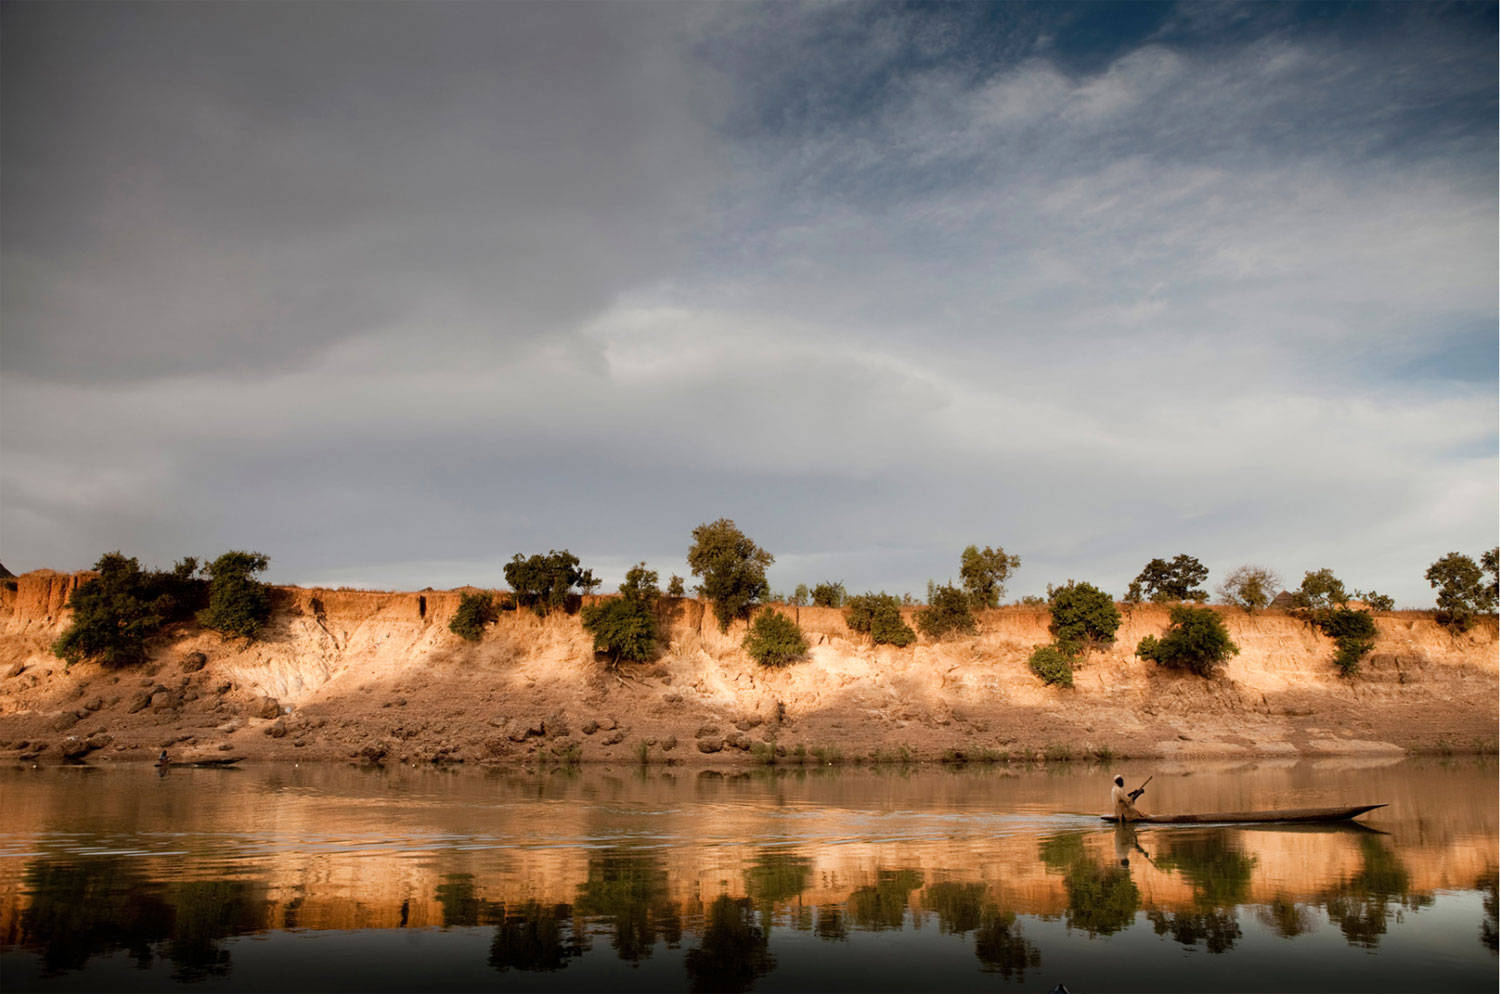 A fisherman paddles past the sandstone banks of River Gambia at Goloumbou, Senegal, West Africa. The water level in the rainy season will reach close to the top of the banks. Image ©Jason Florio - River Gambia Expedition